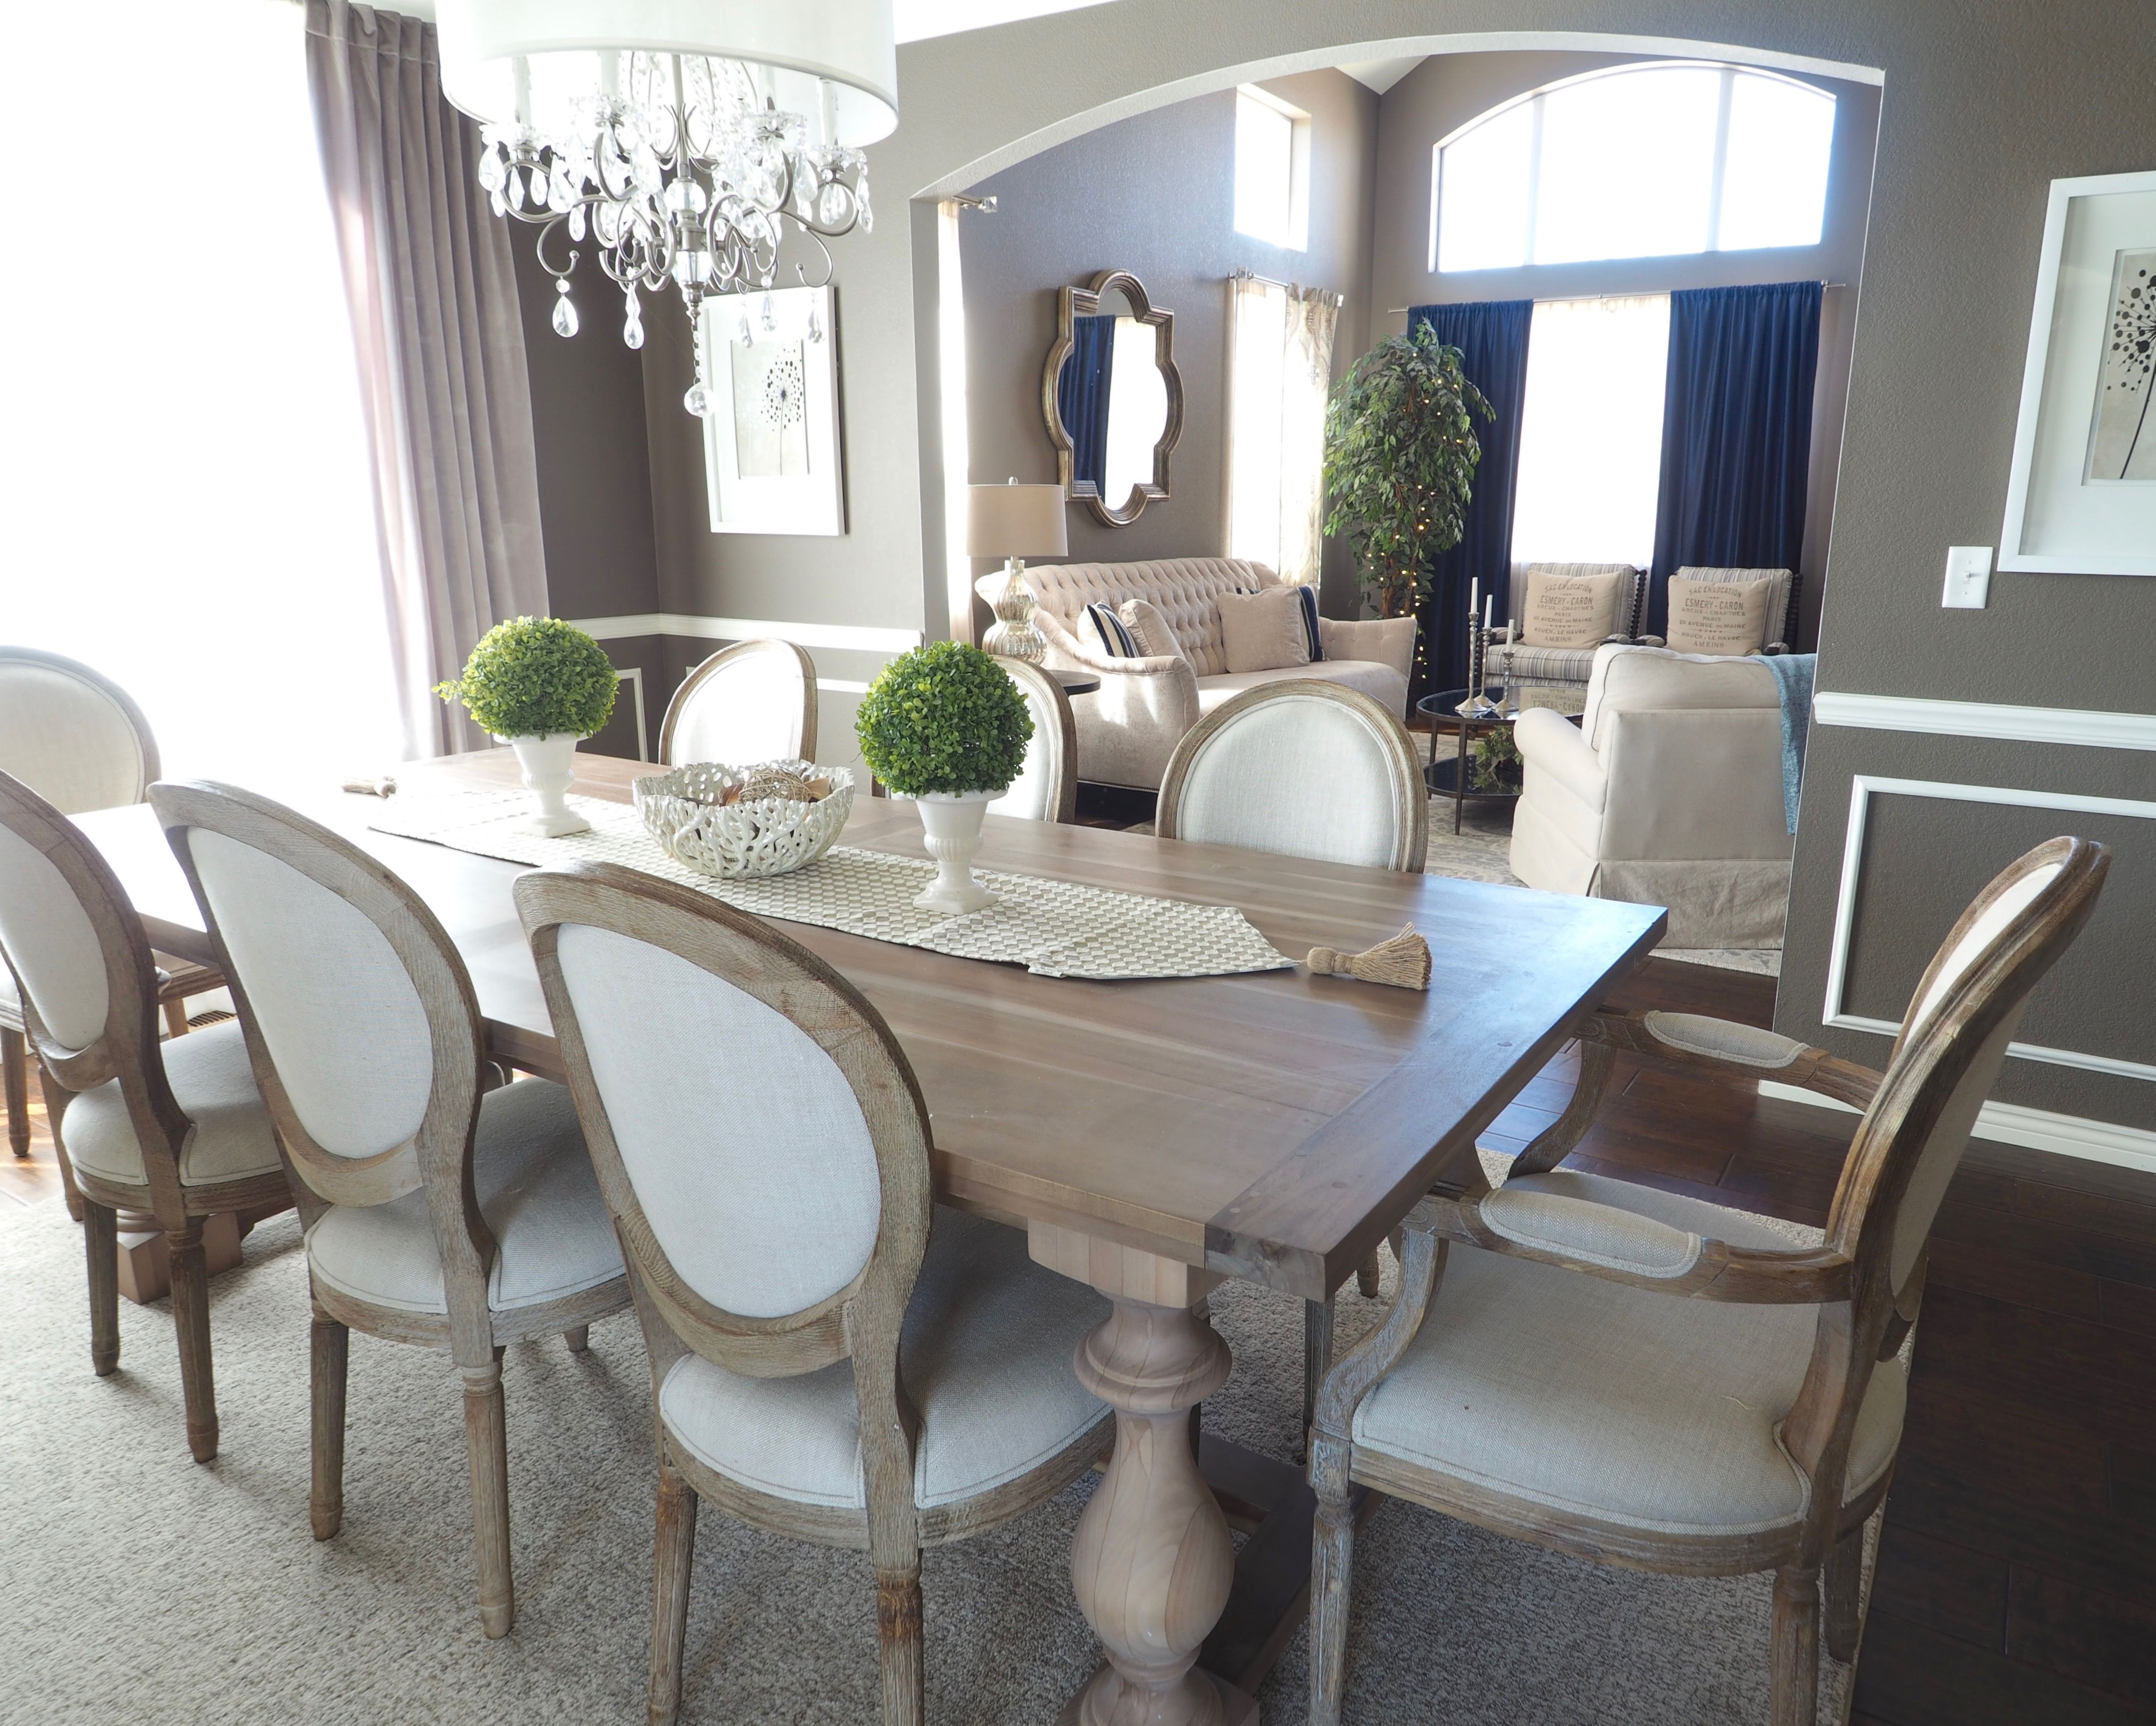 Gray Dining Chair Luxury Rocking Chairs Glam Room Vintage Rustic Wainscoting Diy Velvet Curtains Monochromatic Restoration